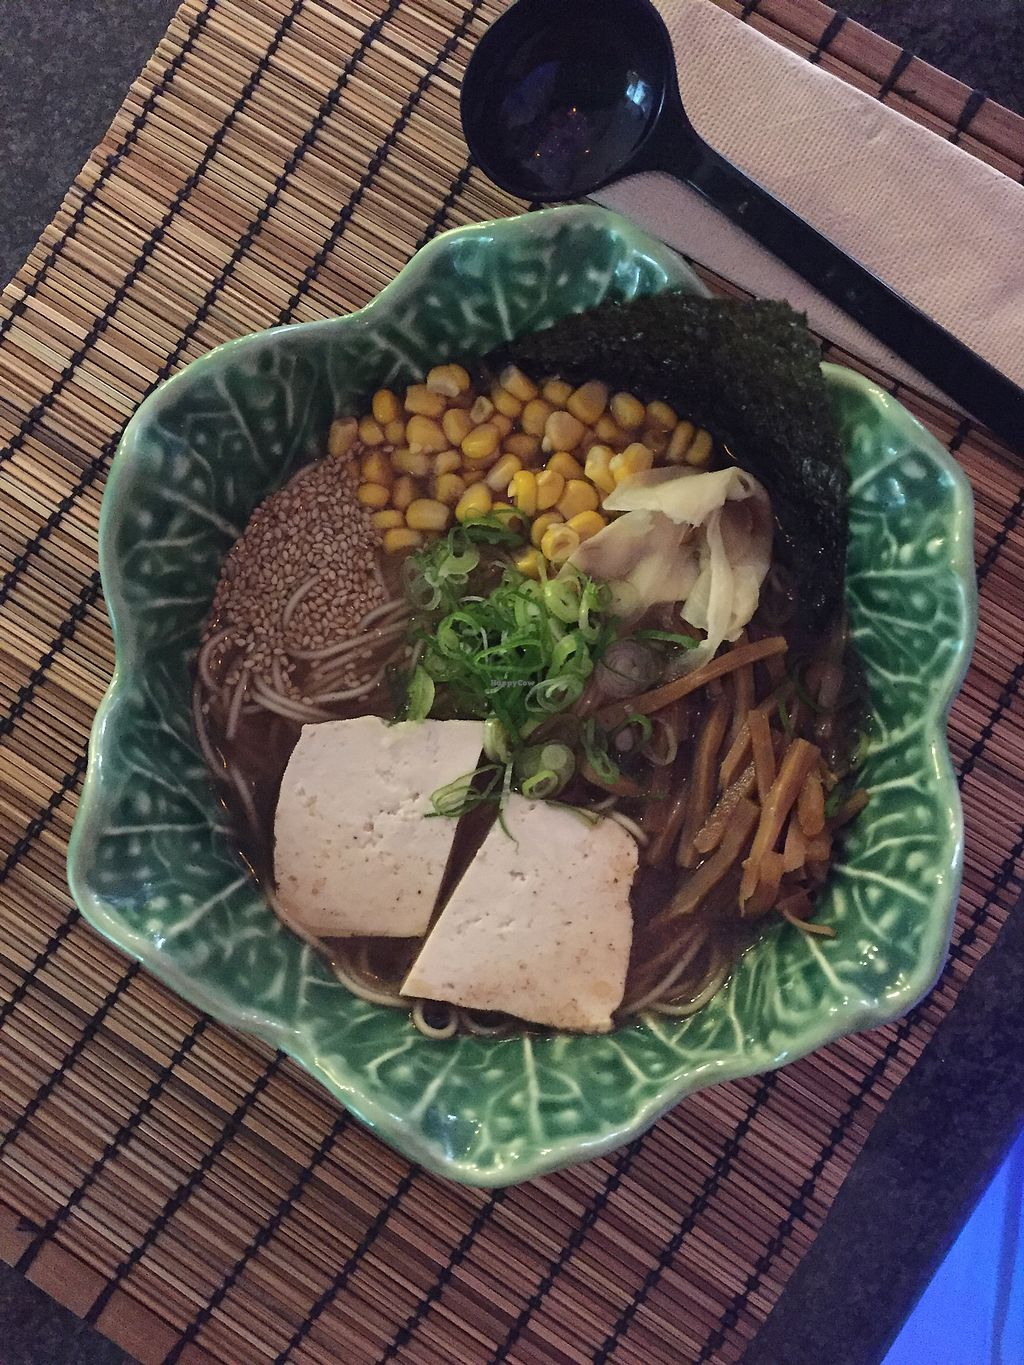 """Photo of Ramen Break  by <a href=""""/members/profile/nitahannele"""">nitahannele</a> <br/>Ramzilla 2.0 <br/> September 25, 2017  - <a href='/contact/abuse/image/82202/308218'>Report</a>"""